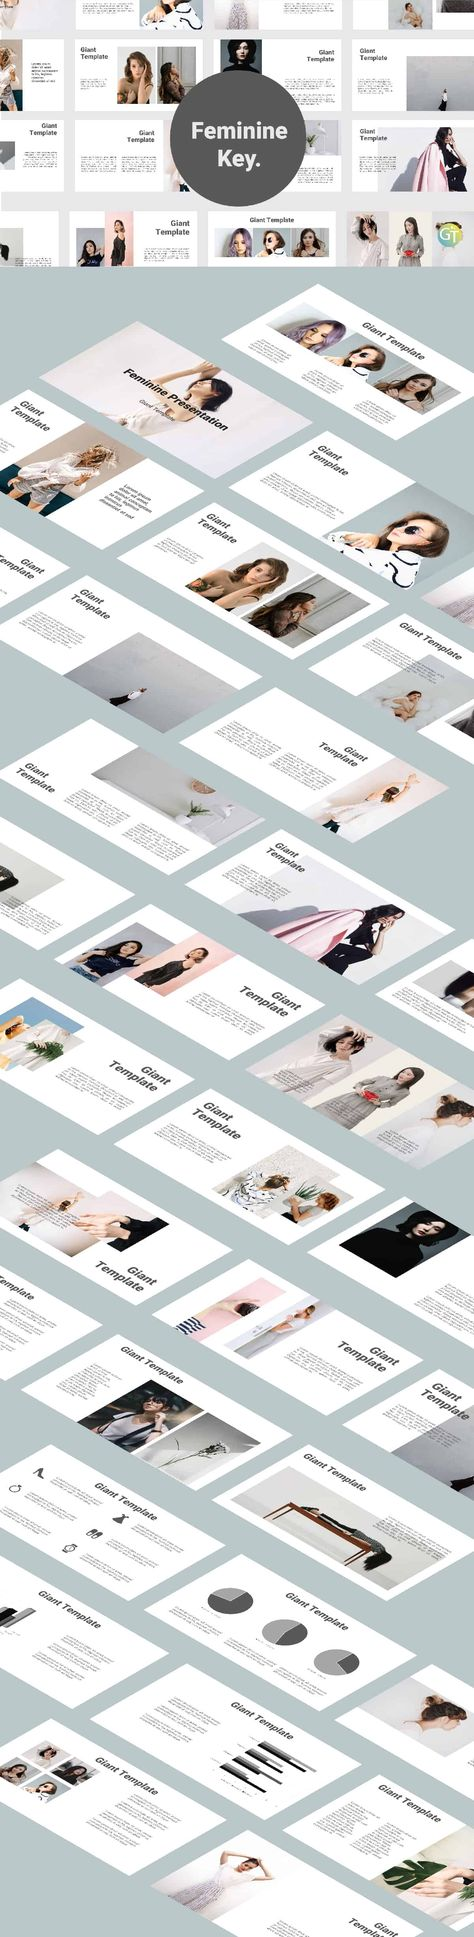 Feminine Free Downloads Keynote Templates